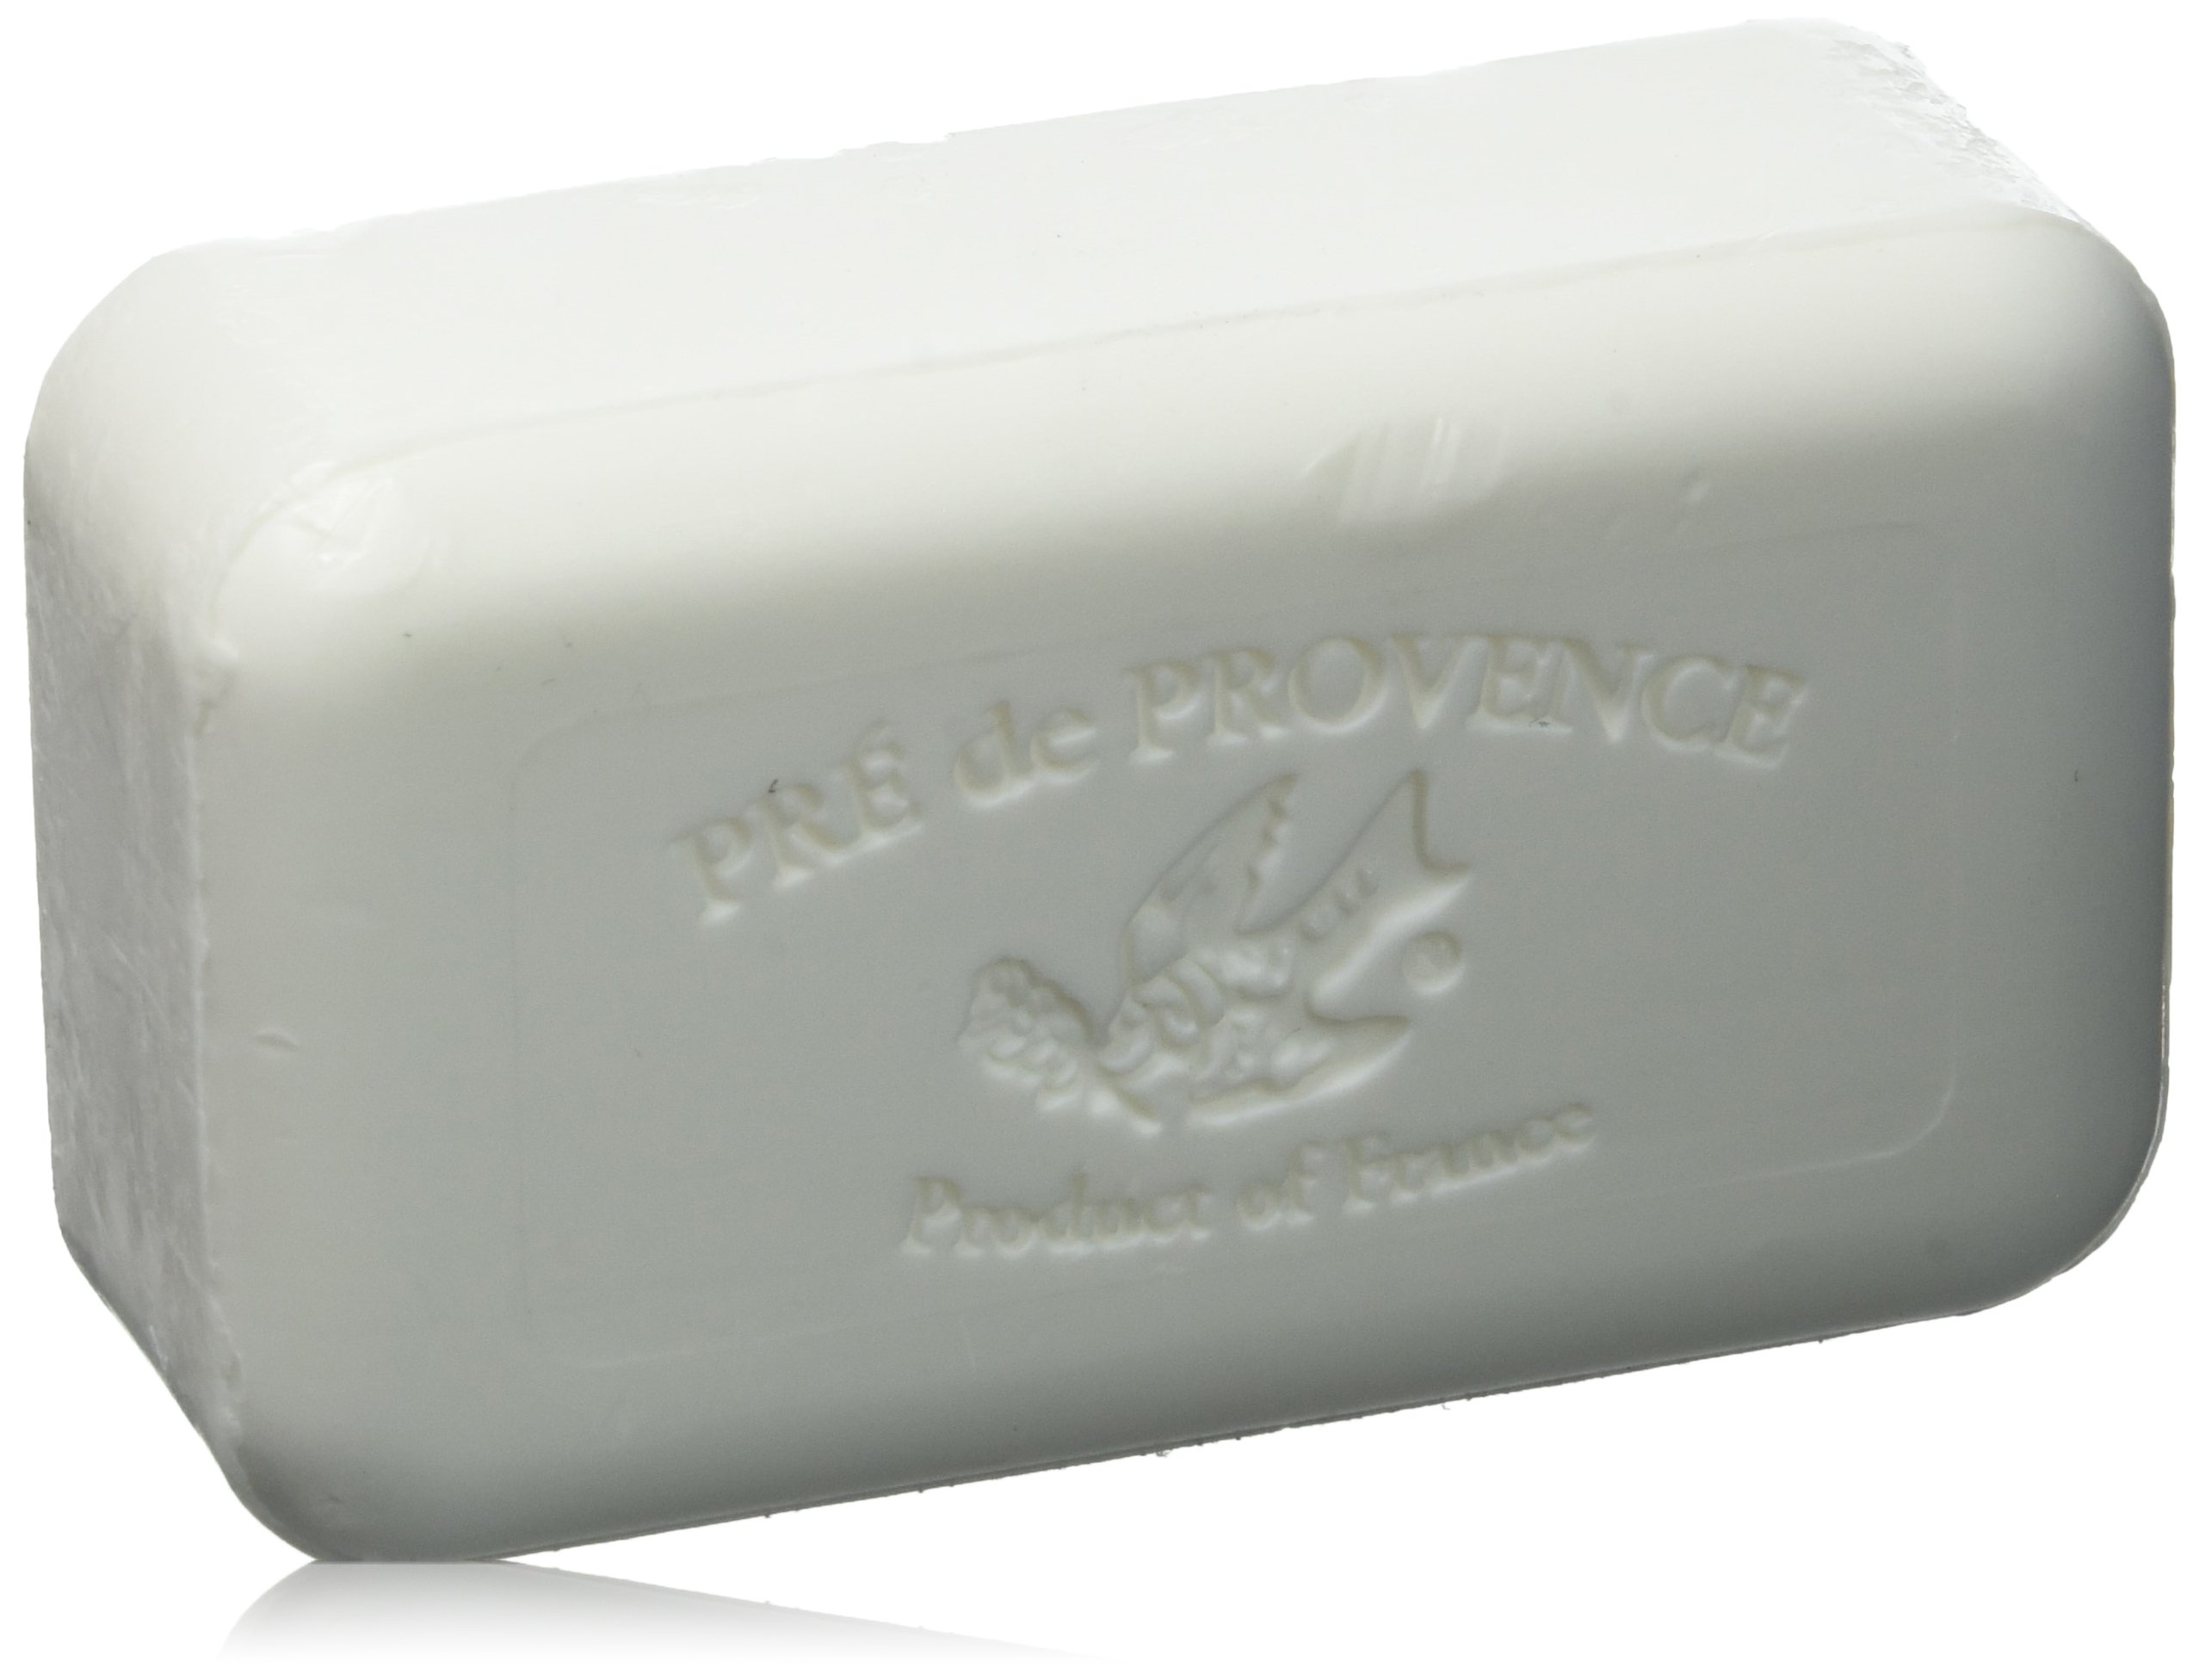 Pre de Provence Sea Salt French Soap Bar, 150g, 5.2 Ounce